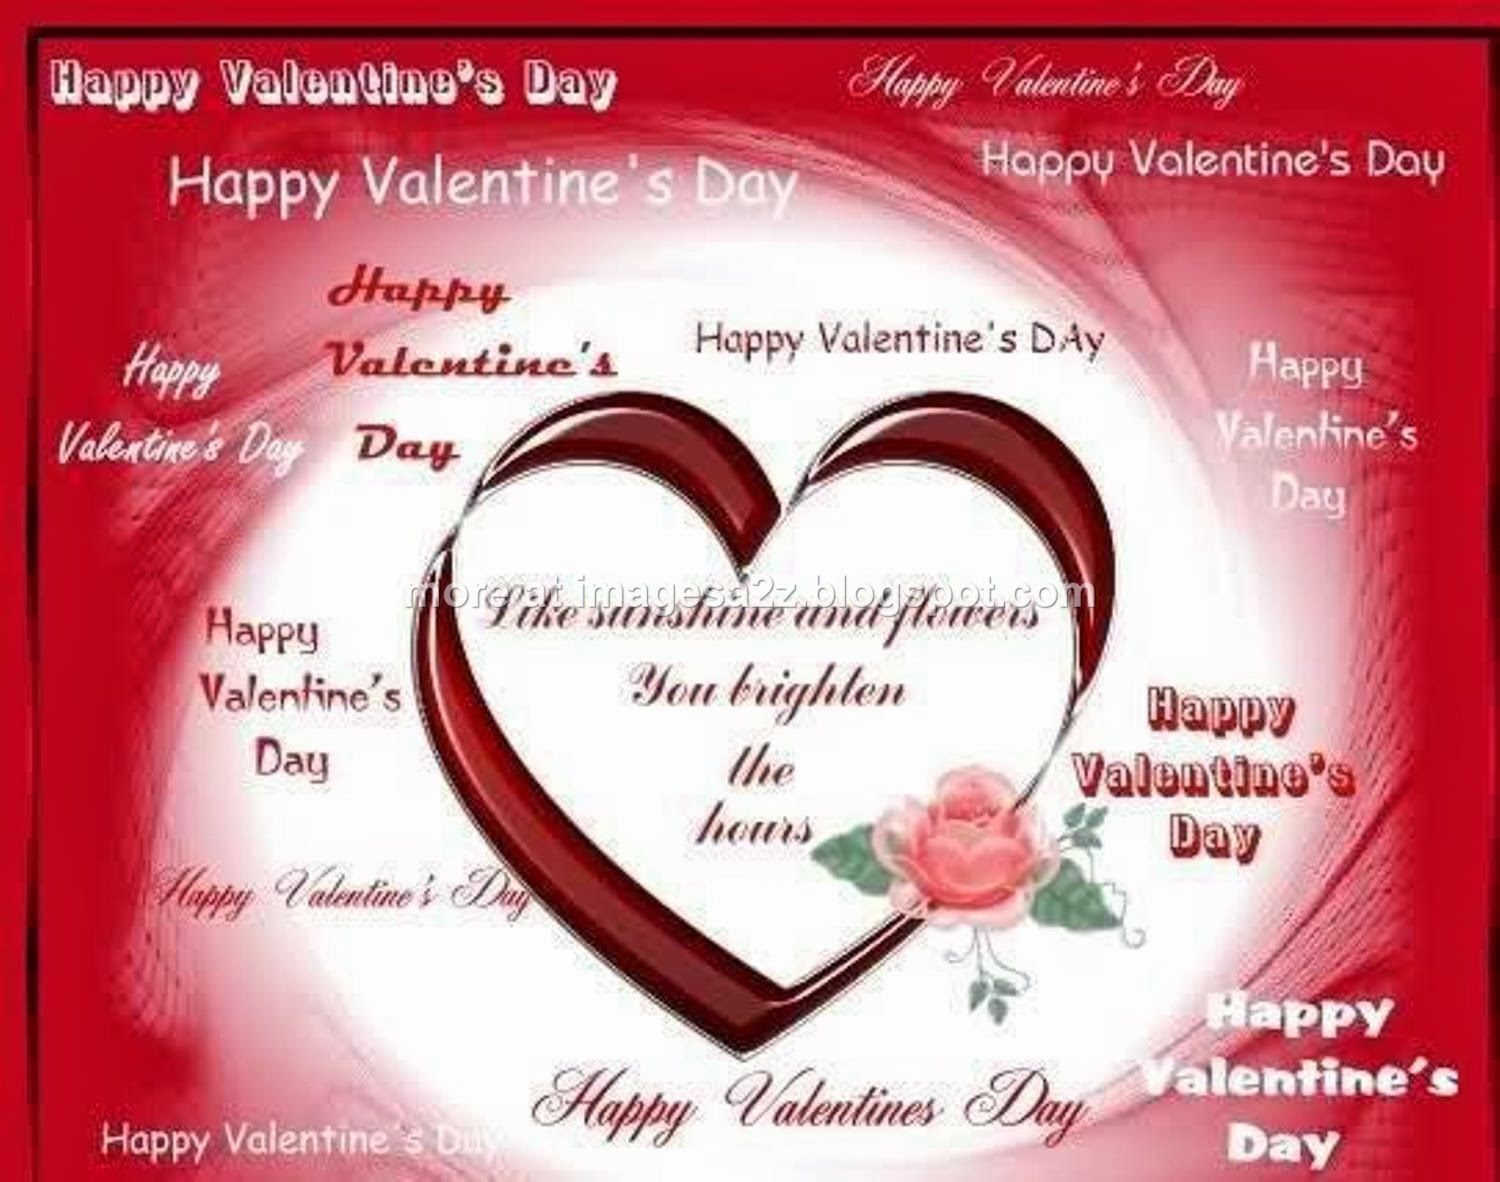 Valentines Day 2014 Gift Ideas  Lovers Day Gift - Happy -7540